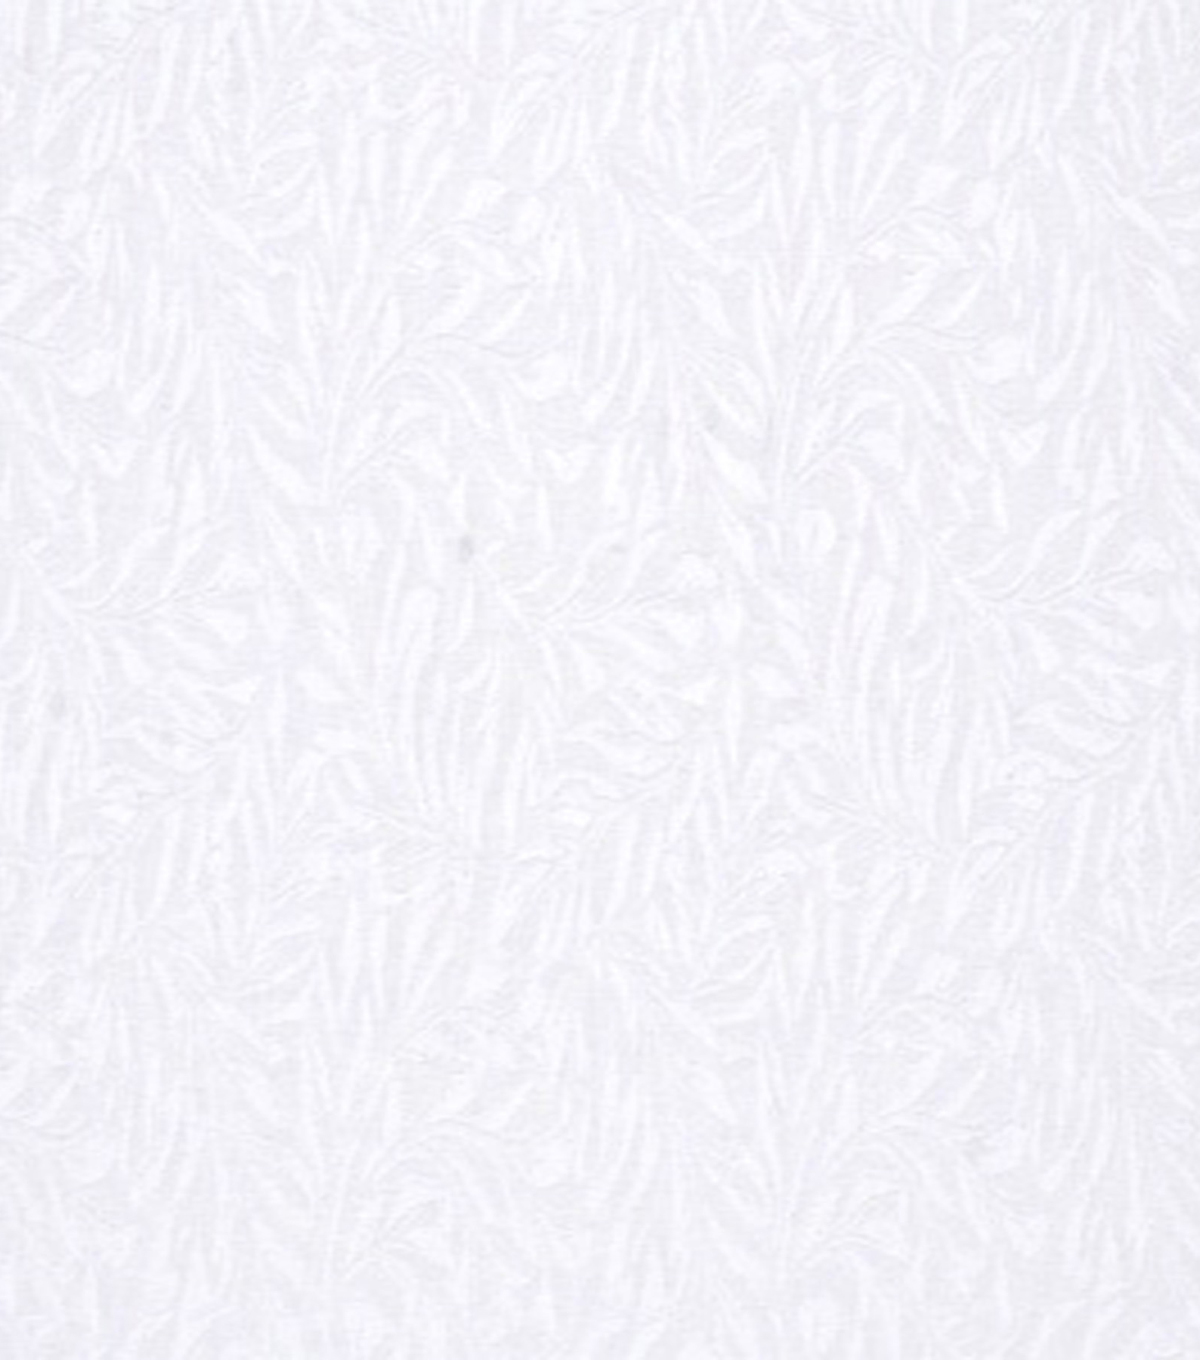 Home Decor 8\u0022x8\u0022 Fabric Swatch-Solid Fabric Robert Allen Mclaine  Snow